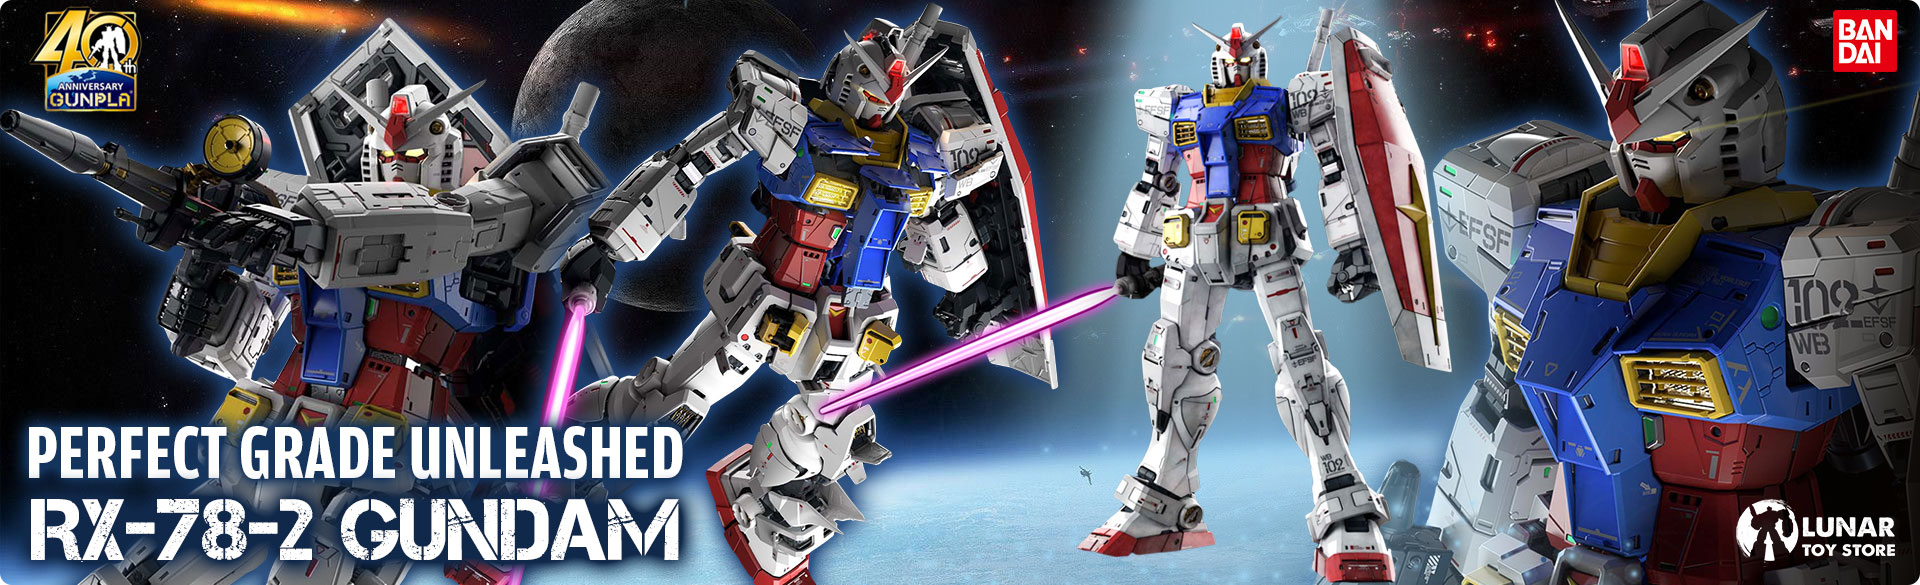 RX-78-2 Gundam PG Unleashed